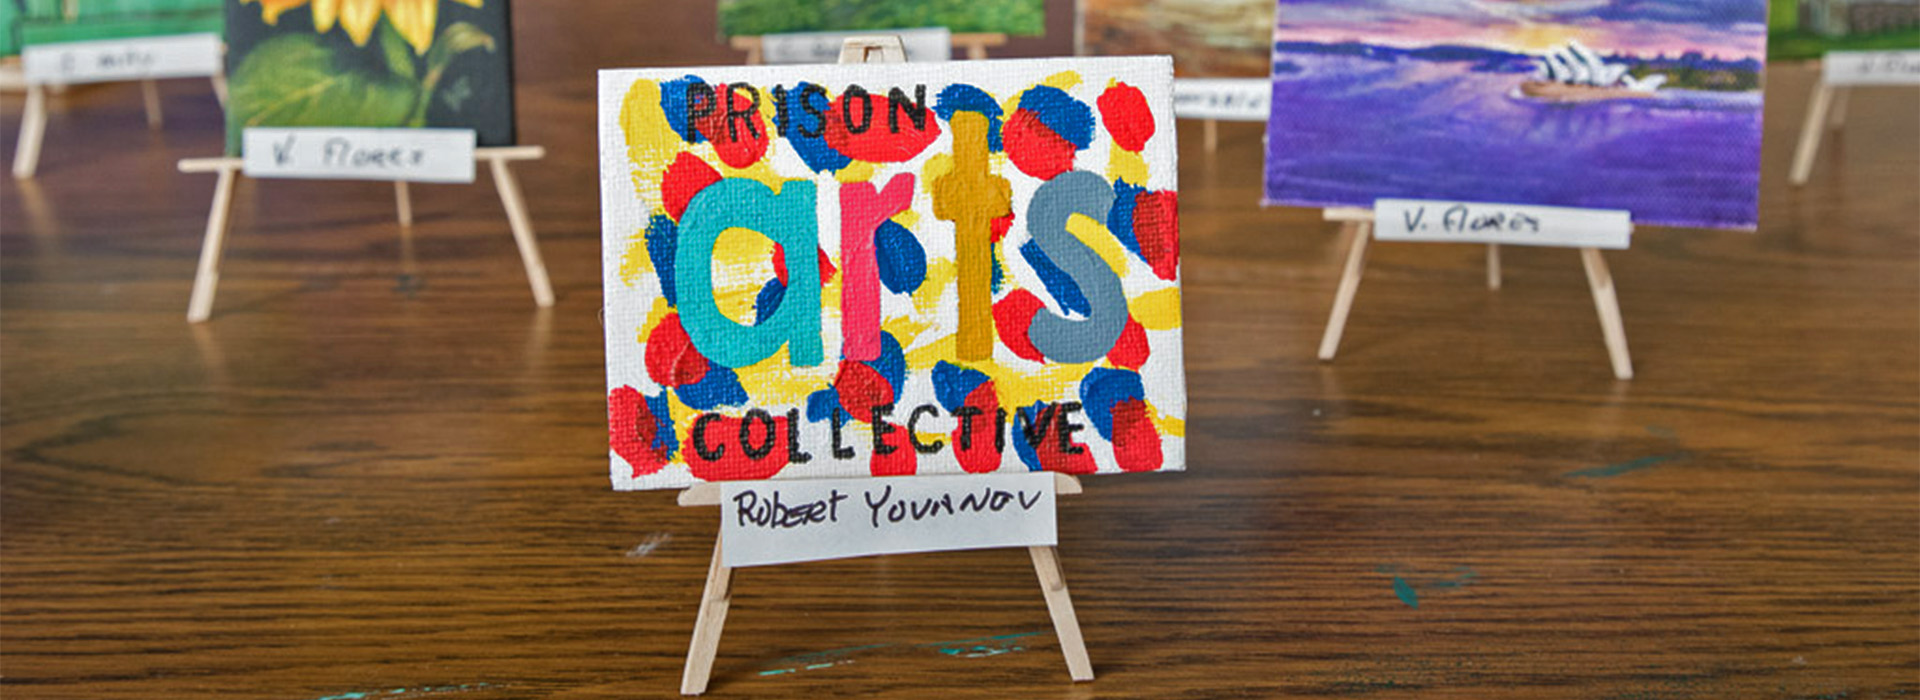 CSUSB Prison Arts Collective art exhibition now on display in Los Angeles' CB1 Gallery